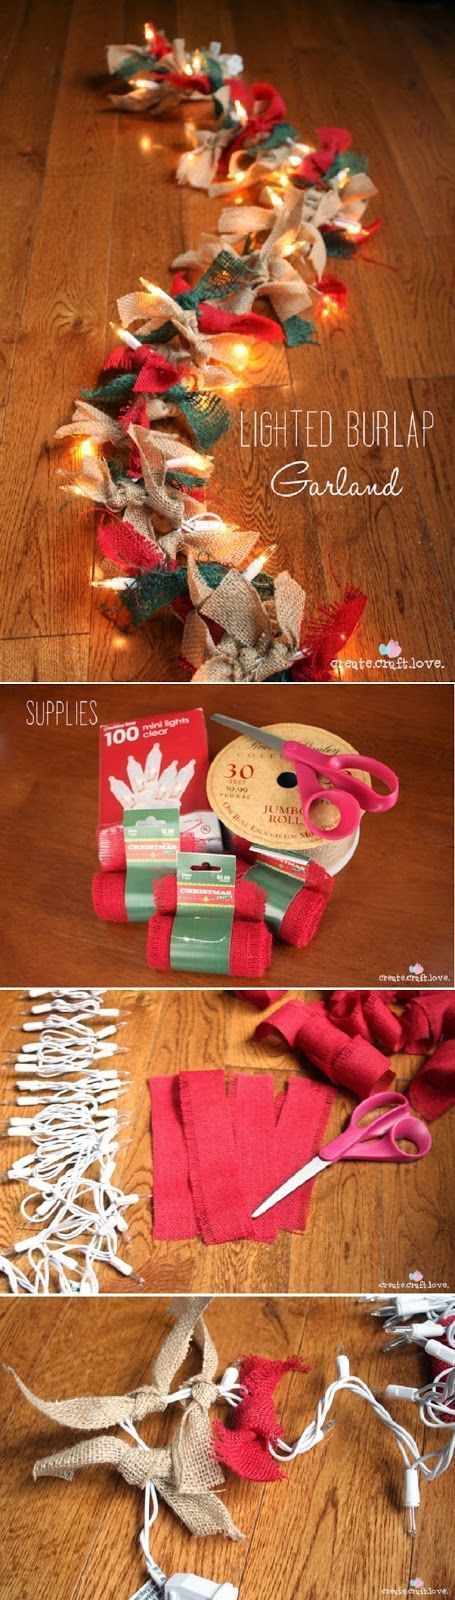 Lighted Burlap Garland For Christmas {How To} - CreateCraftLove